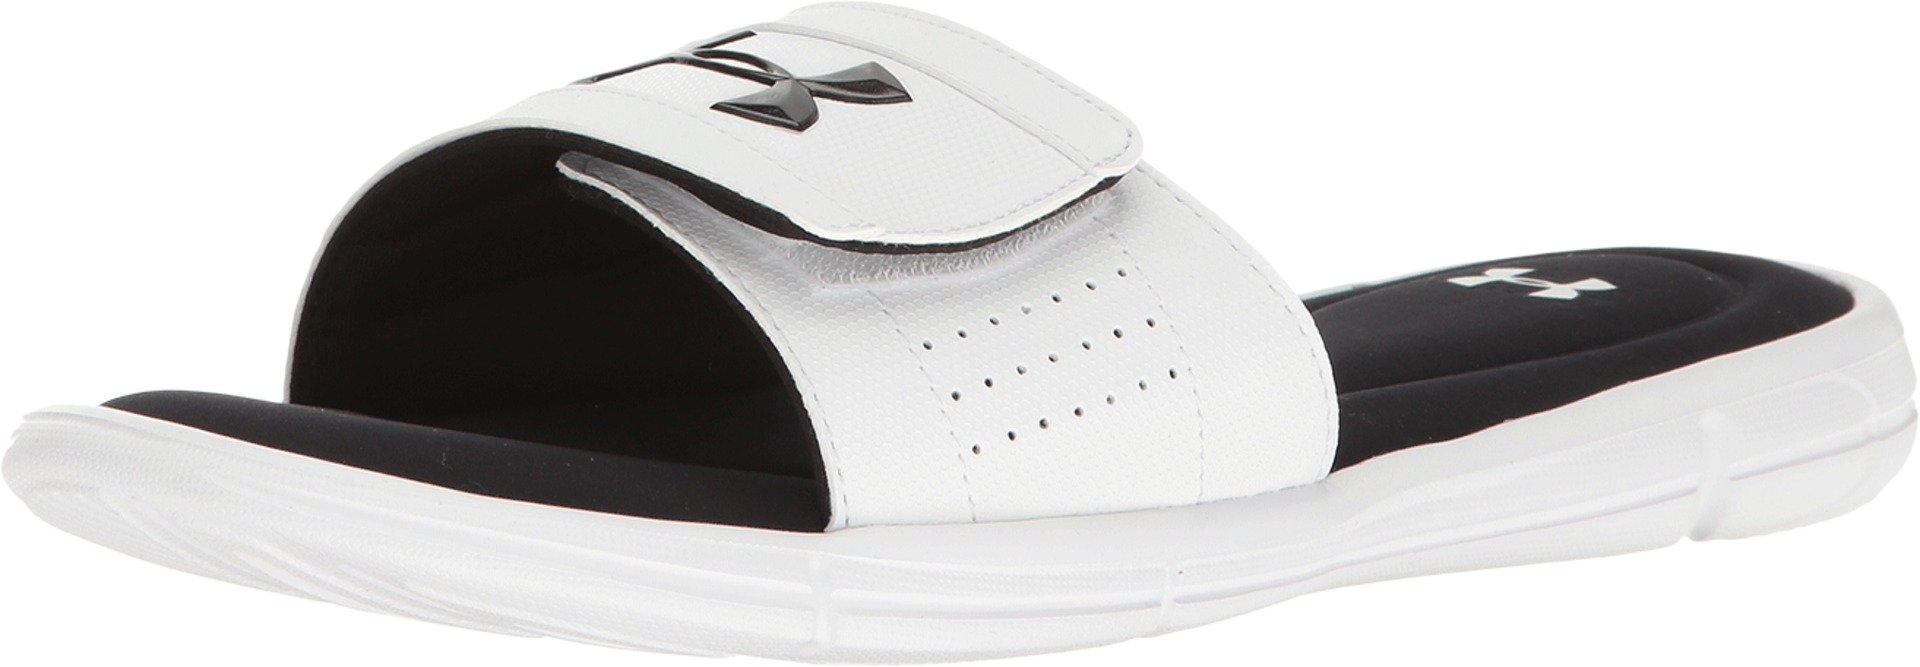 Under Armour Men's UA Ignite V Slide White/Black 16 D US